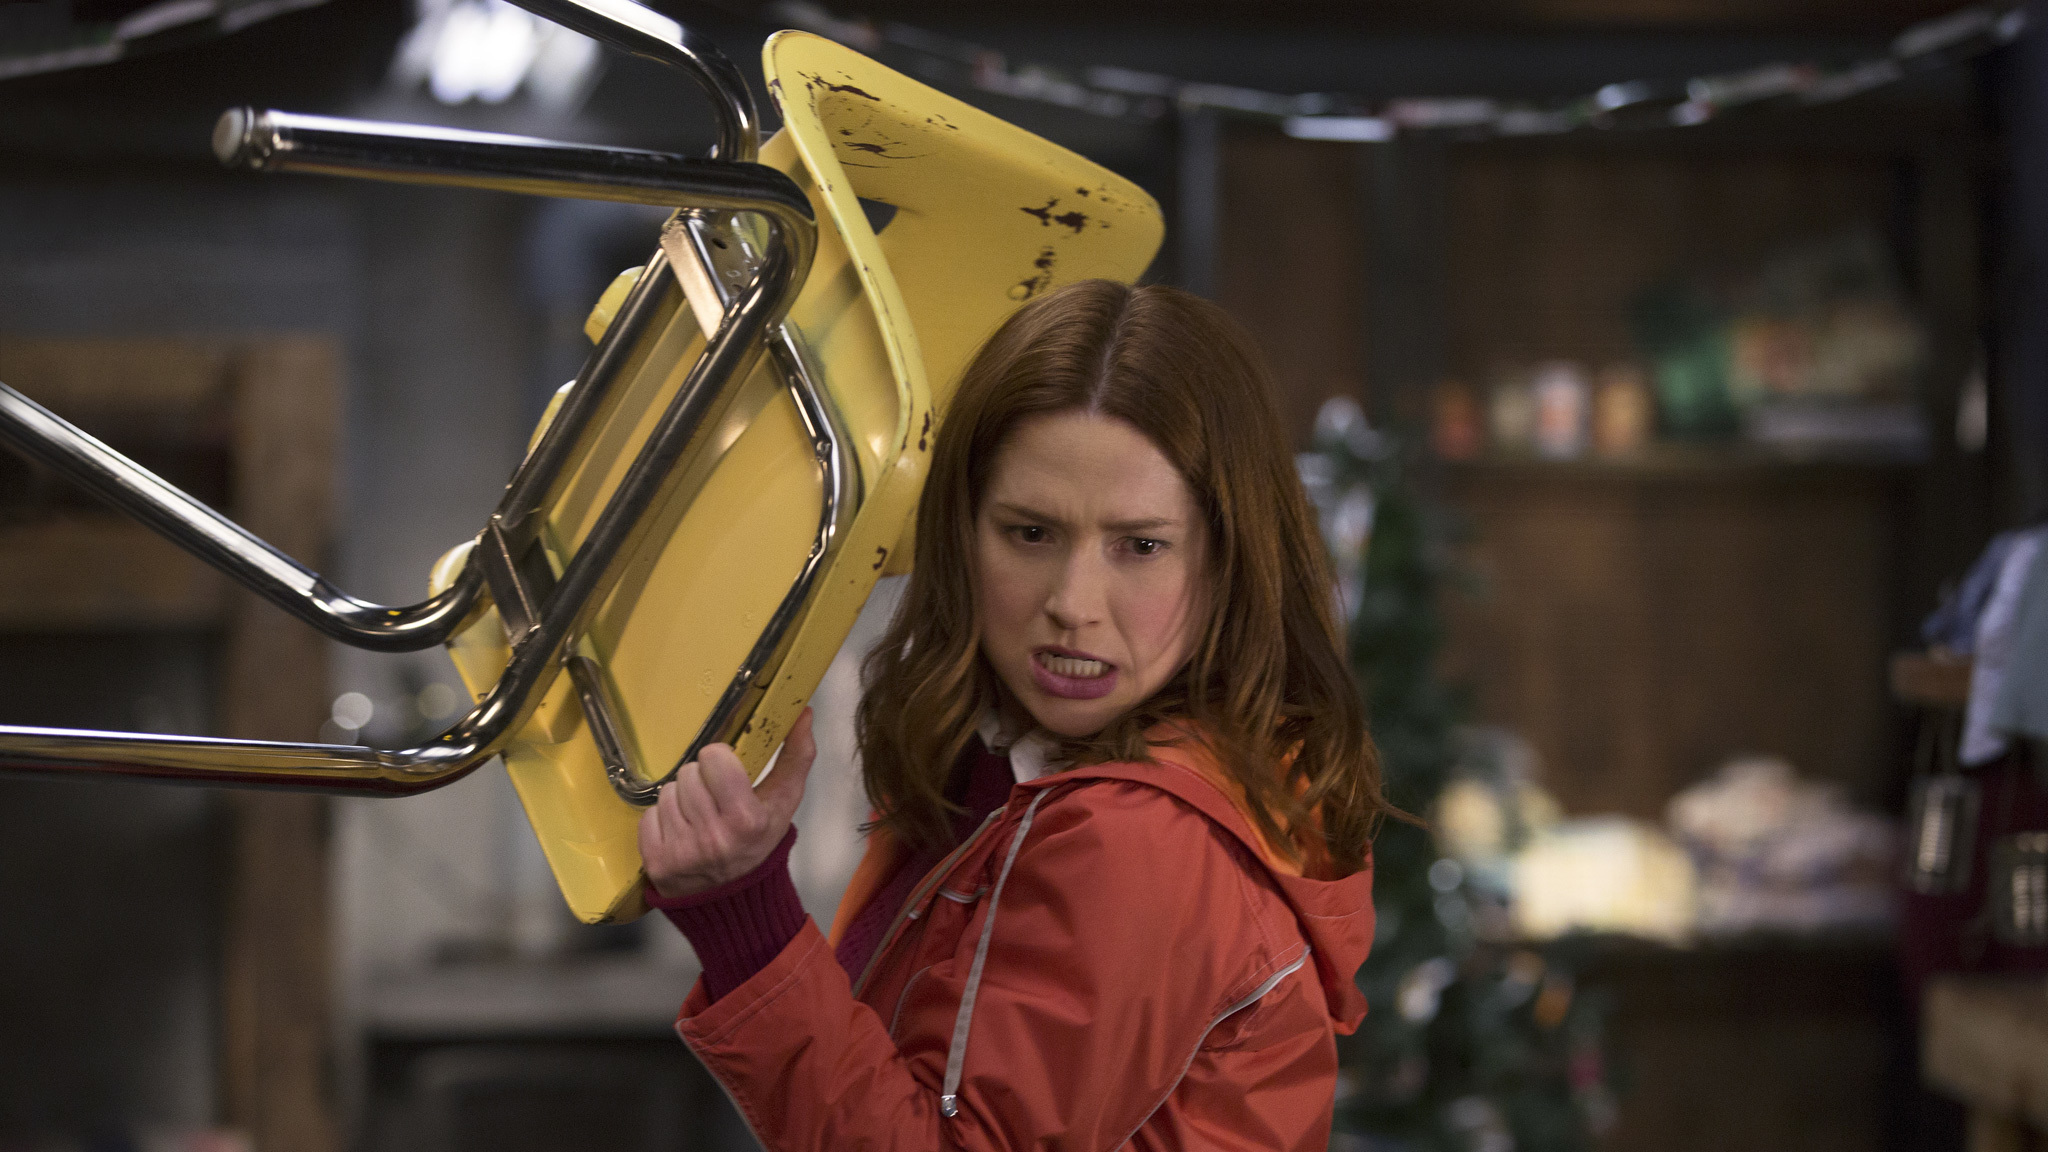 The best Netflix series coming soon:Unbreakable Kimmy Schmidt